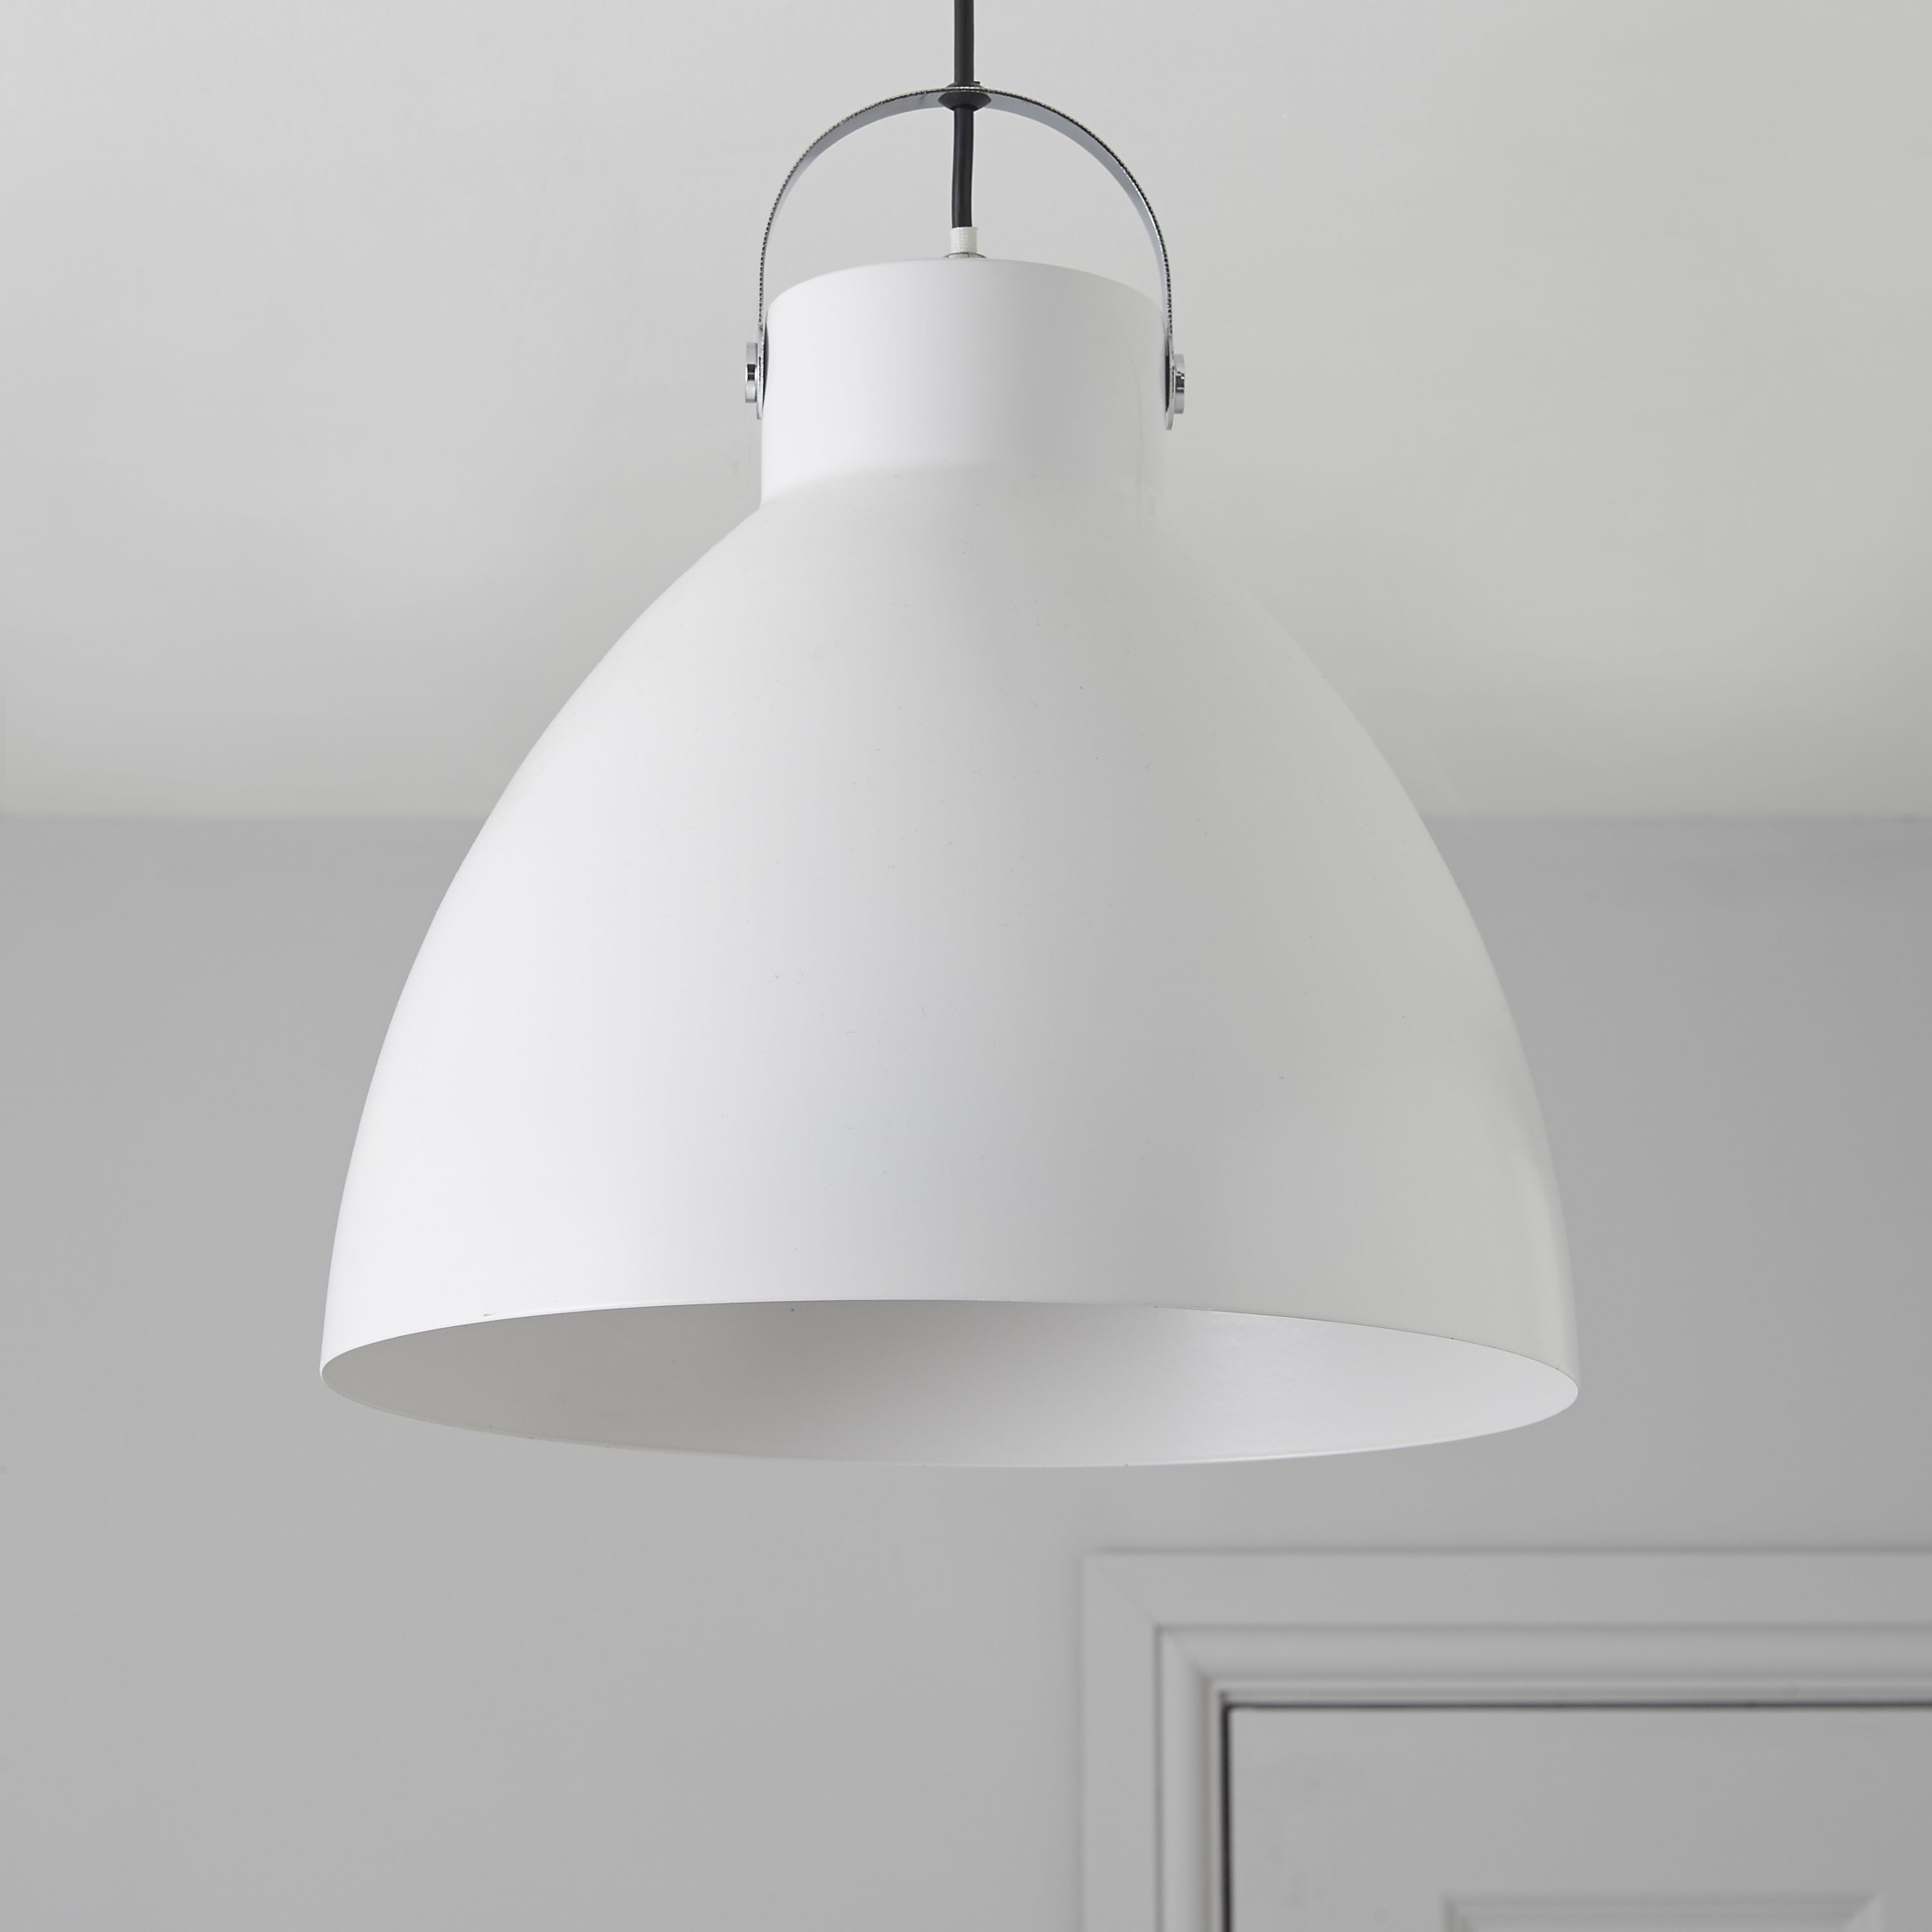 Tibbon White Pendant Ceiling Light Departments Diy At B Amp Q